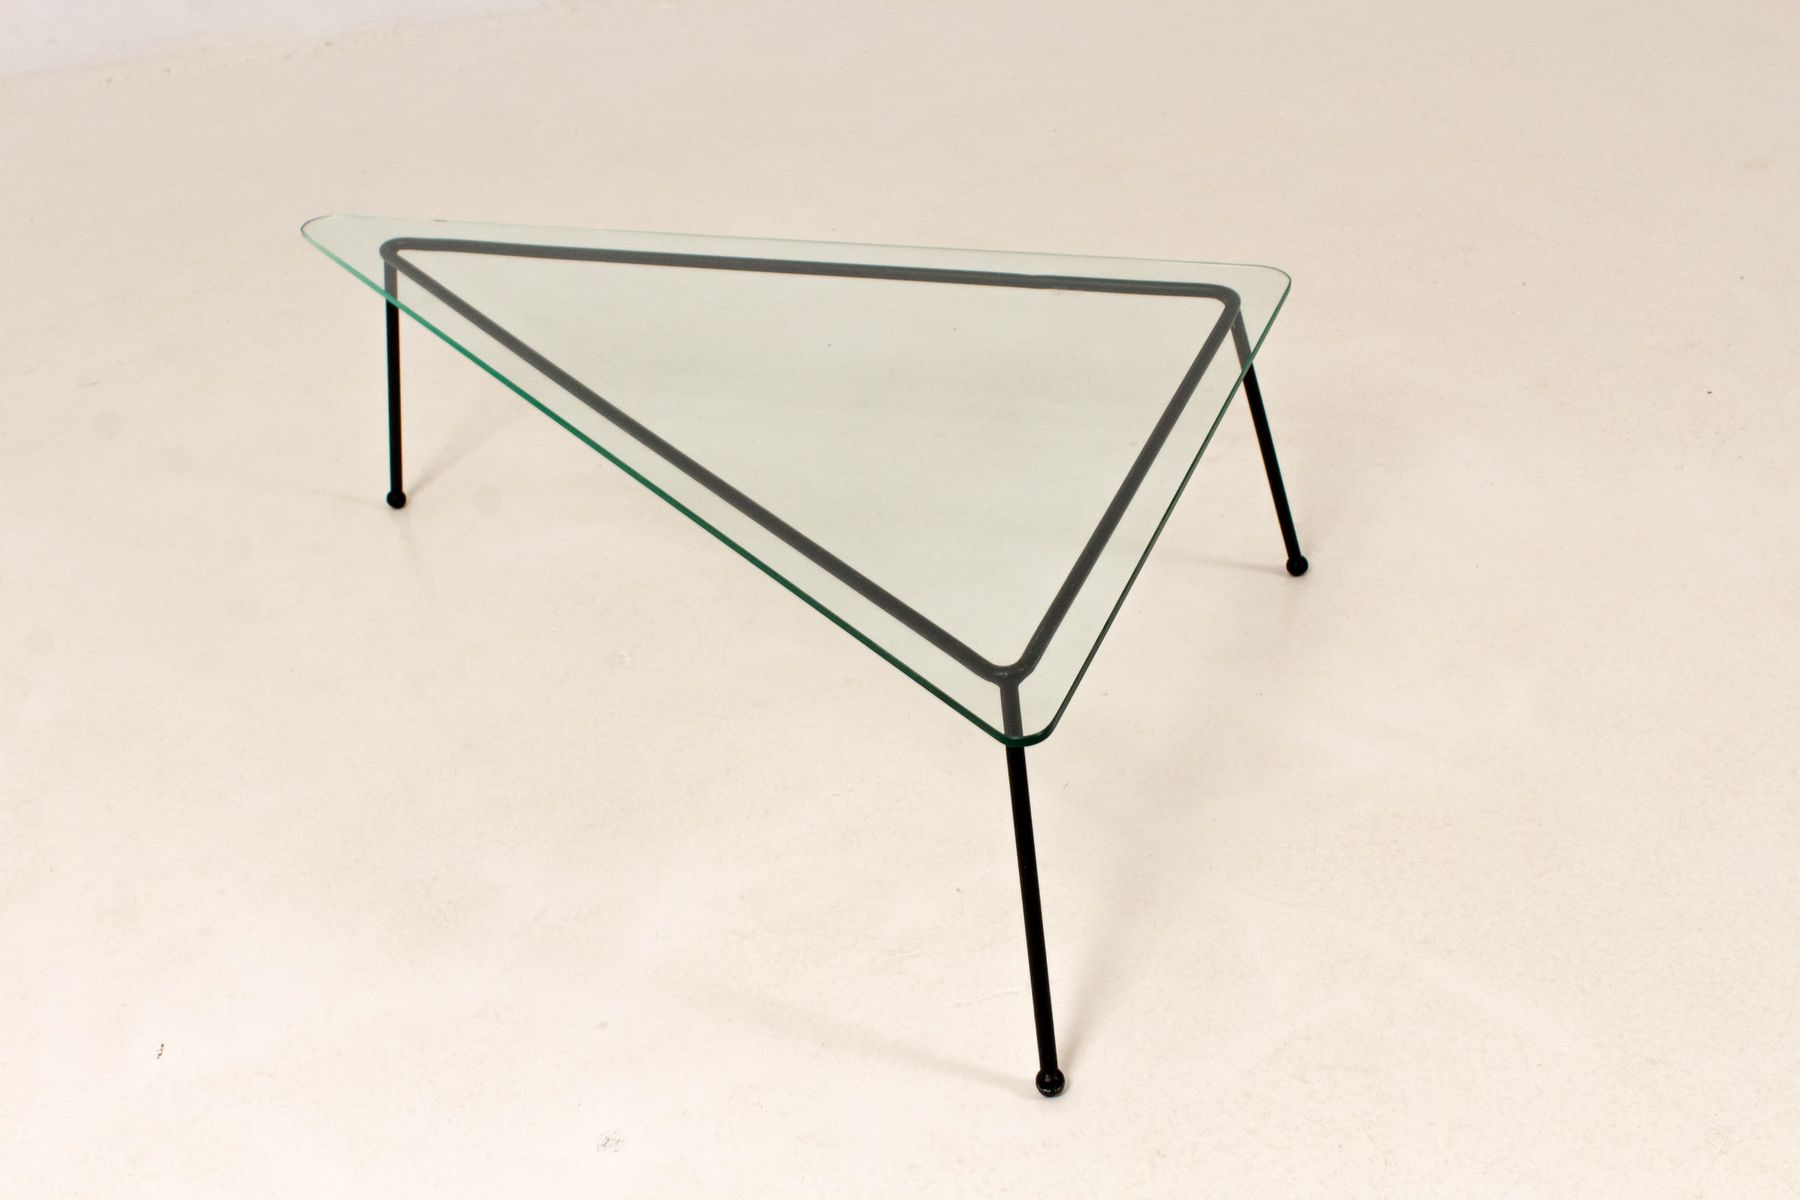 mid-century modern triangular coffee table, 1960s for sale at pamono